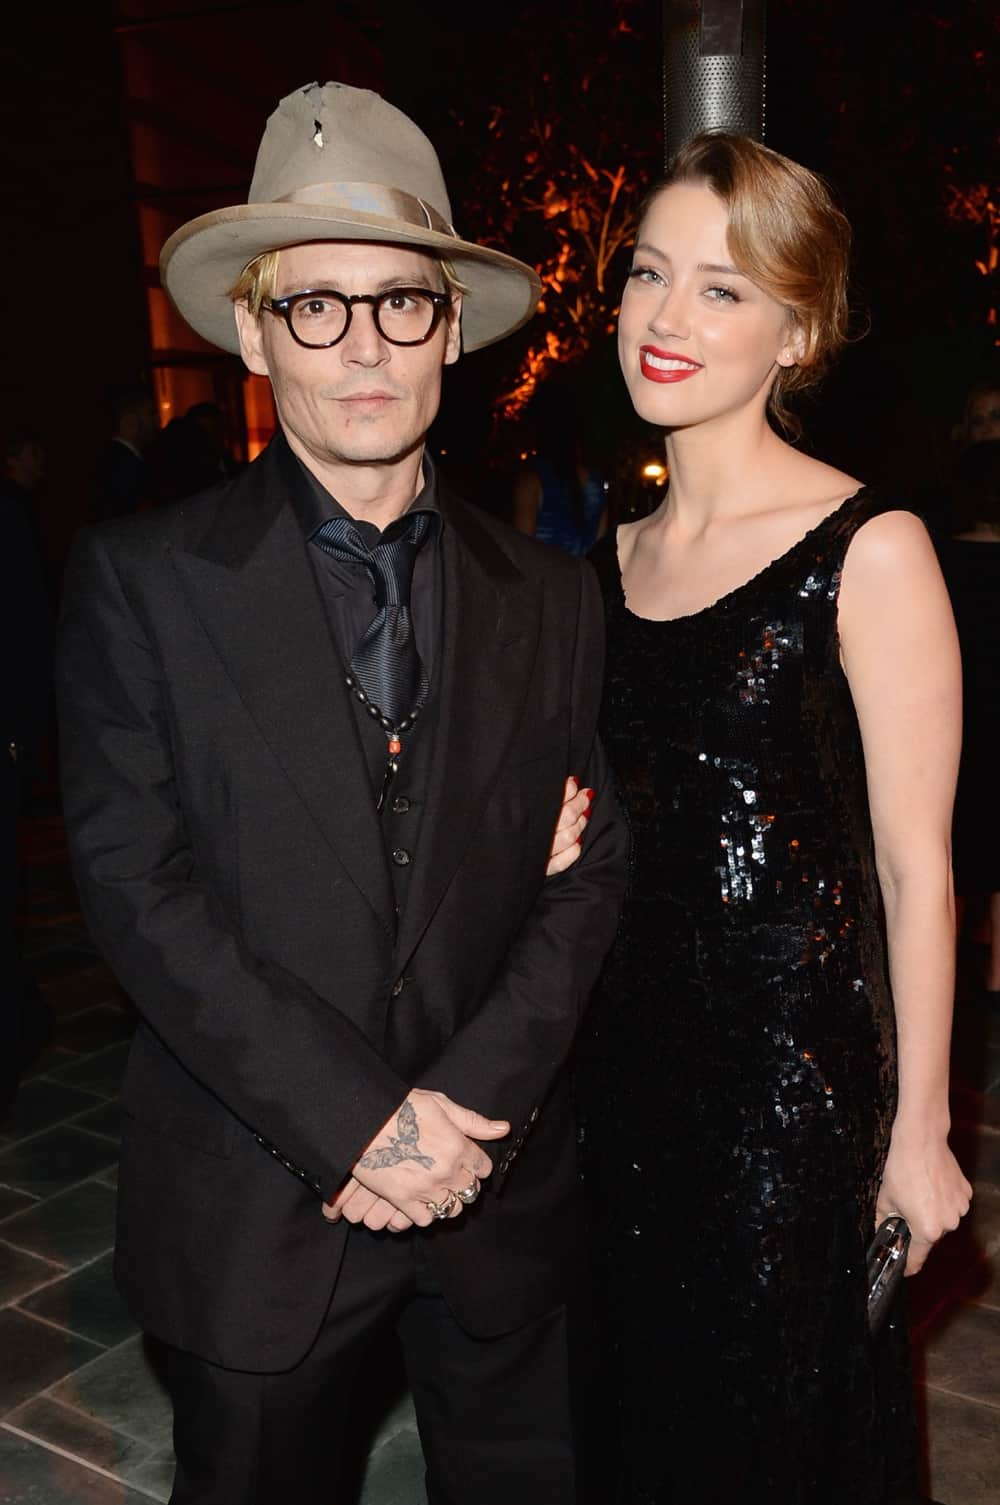 Amber Heard and Johnny Depp The Art of Elysium's 7th Annual HEAVEN Gala Presented by Mercedes-Benz - Inside